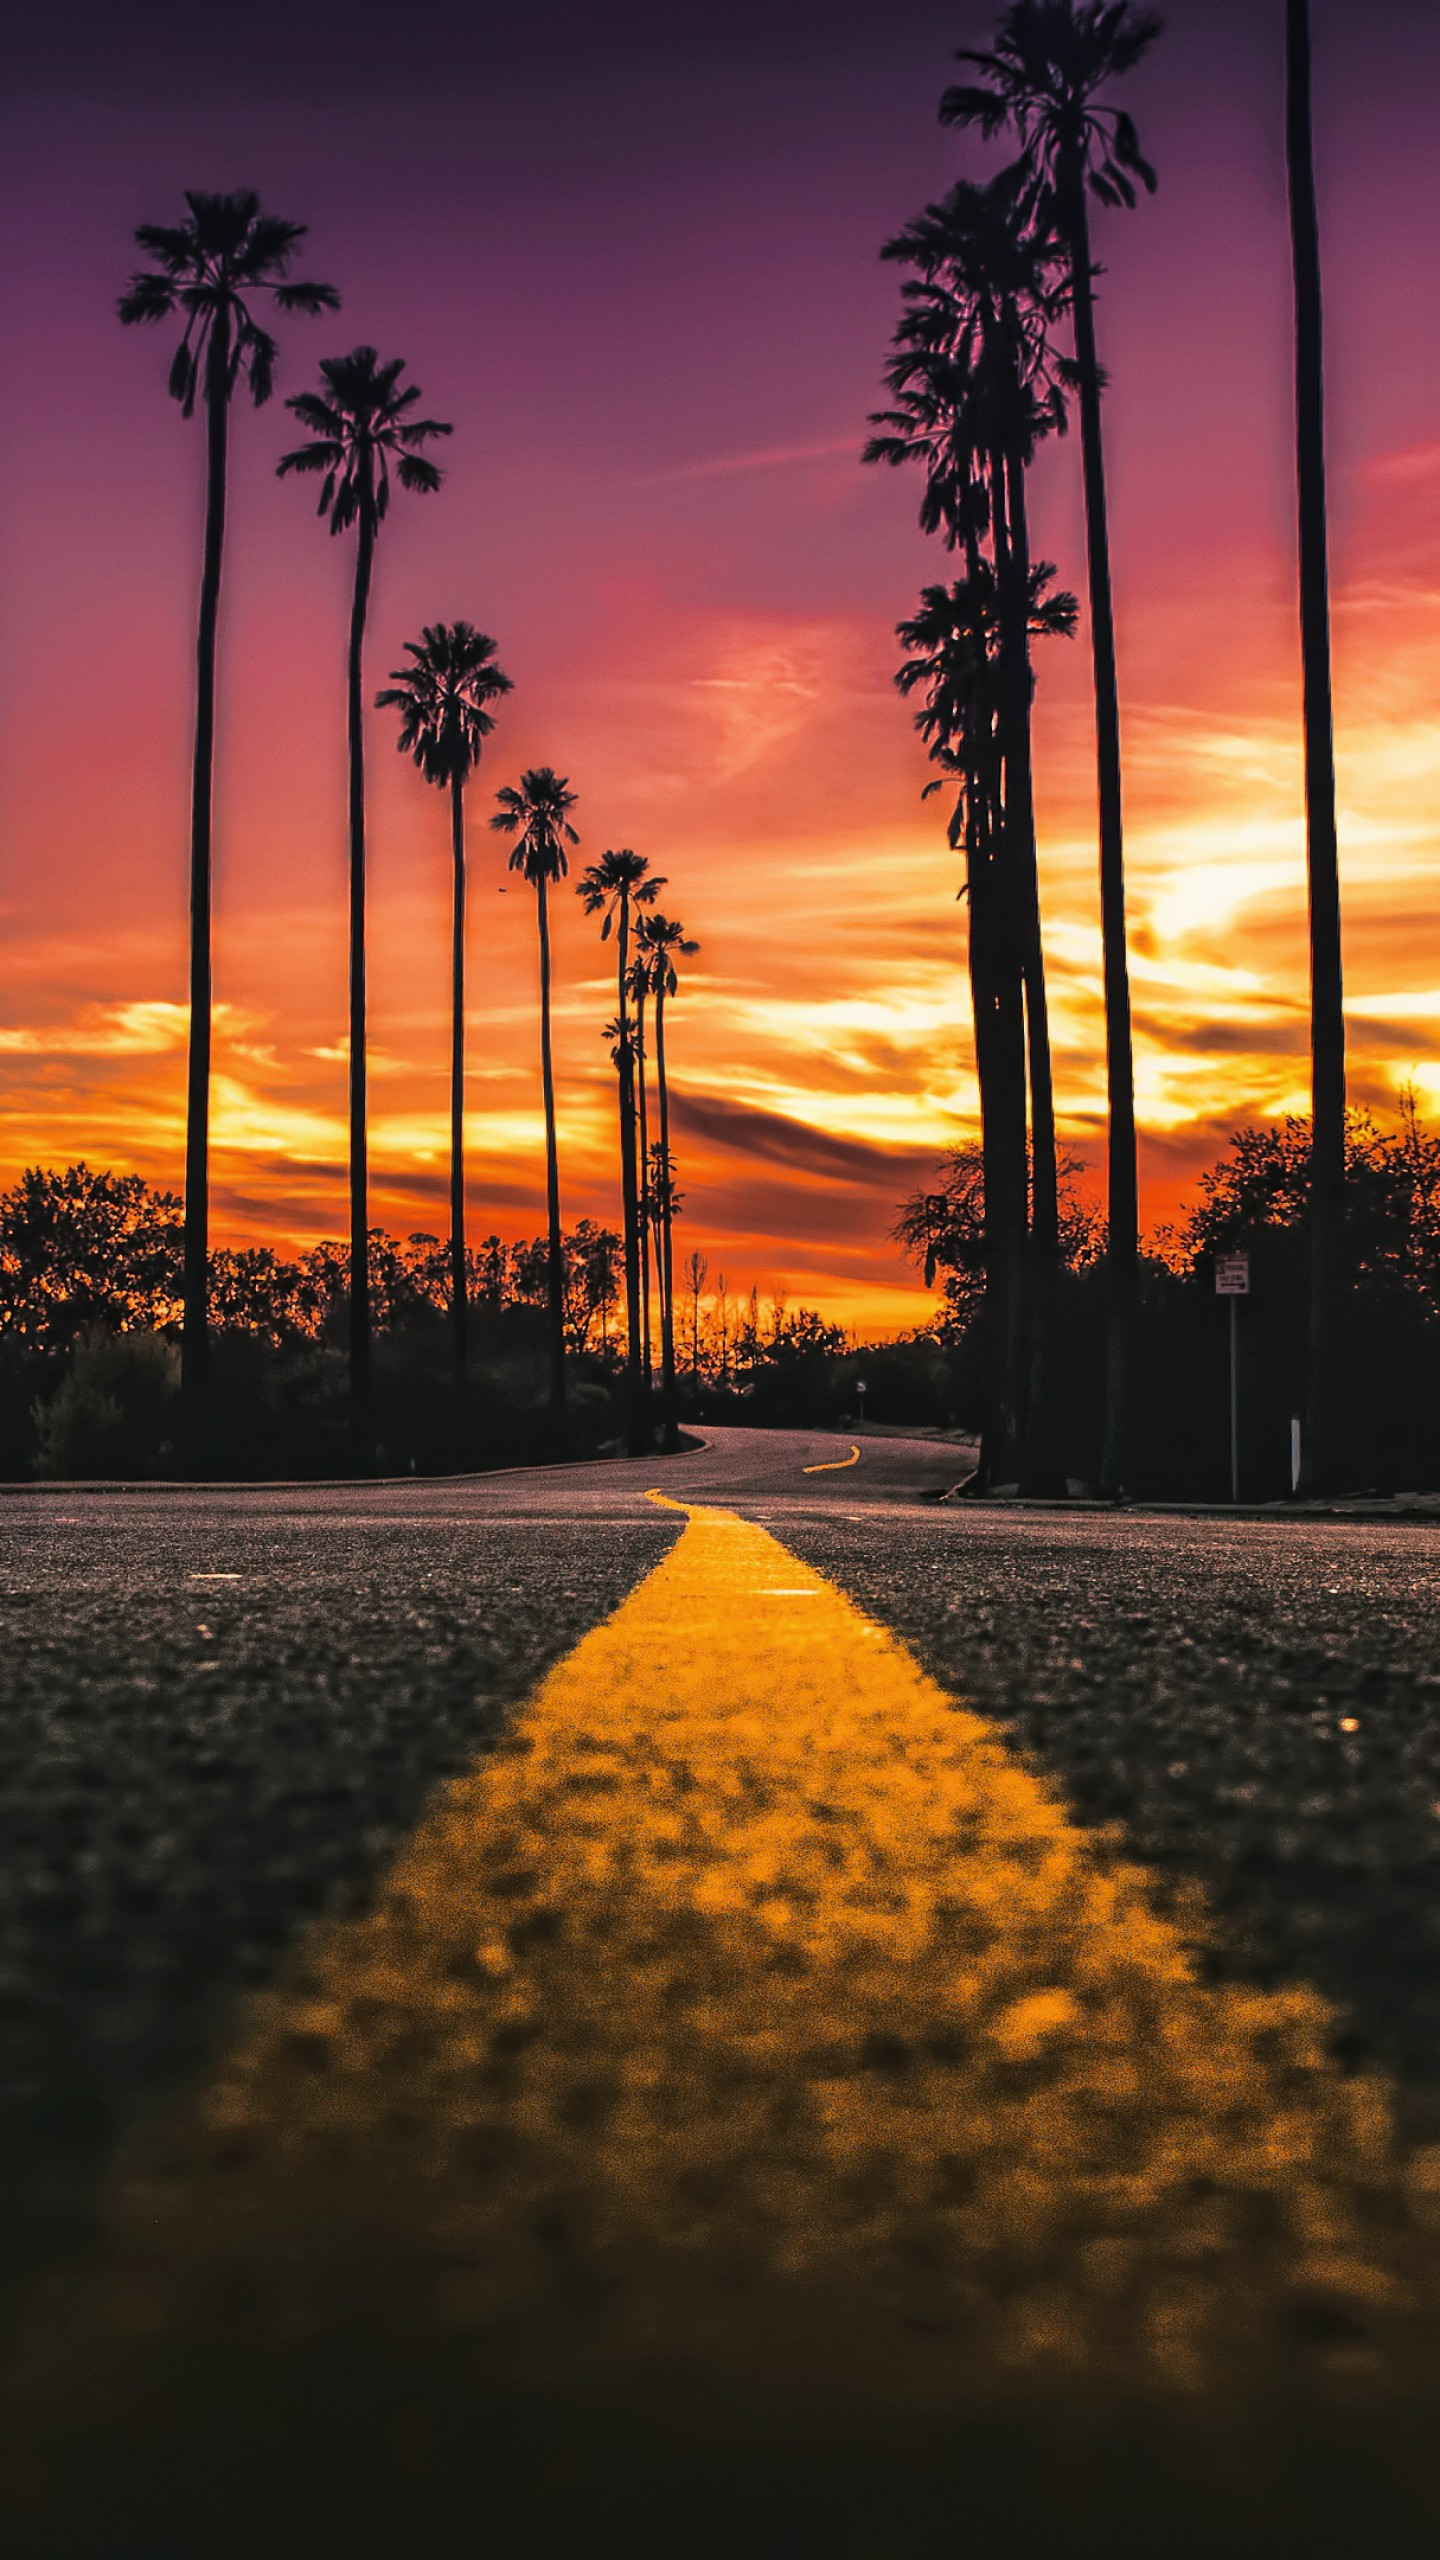 Florida Beach Fall Wallpaper Stock Images Los Angeles California Road Palms Sunset